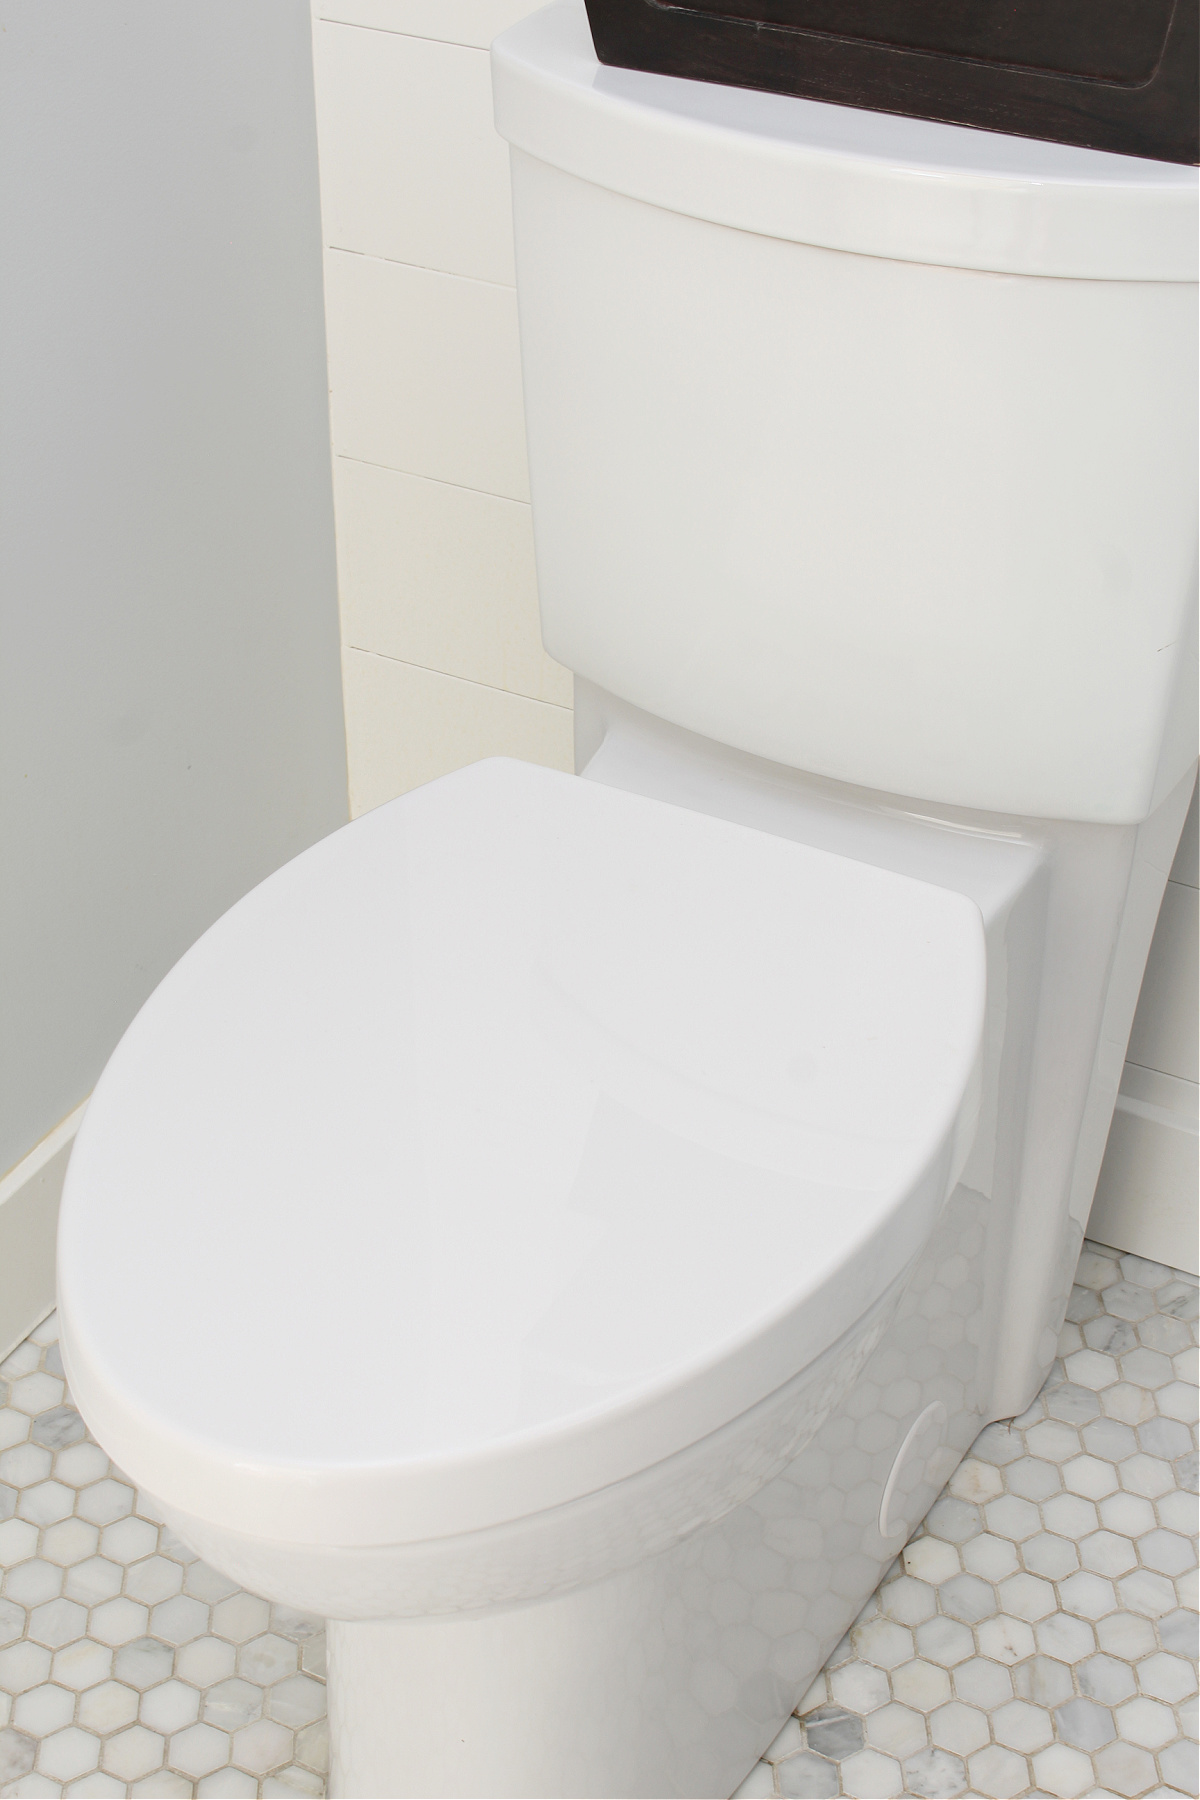 American Standard toilet with concealed trapway.